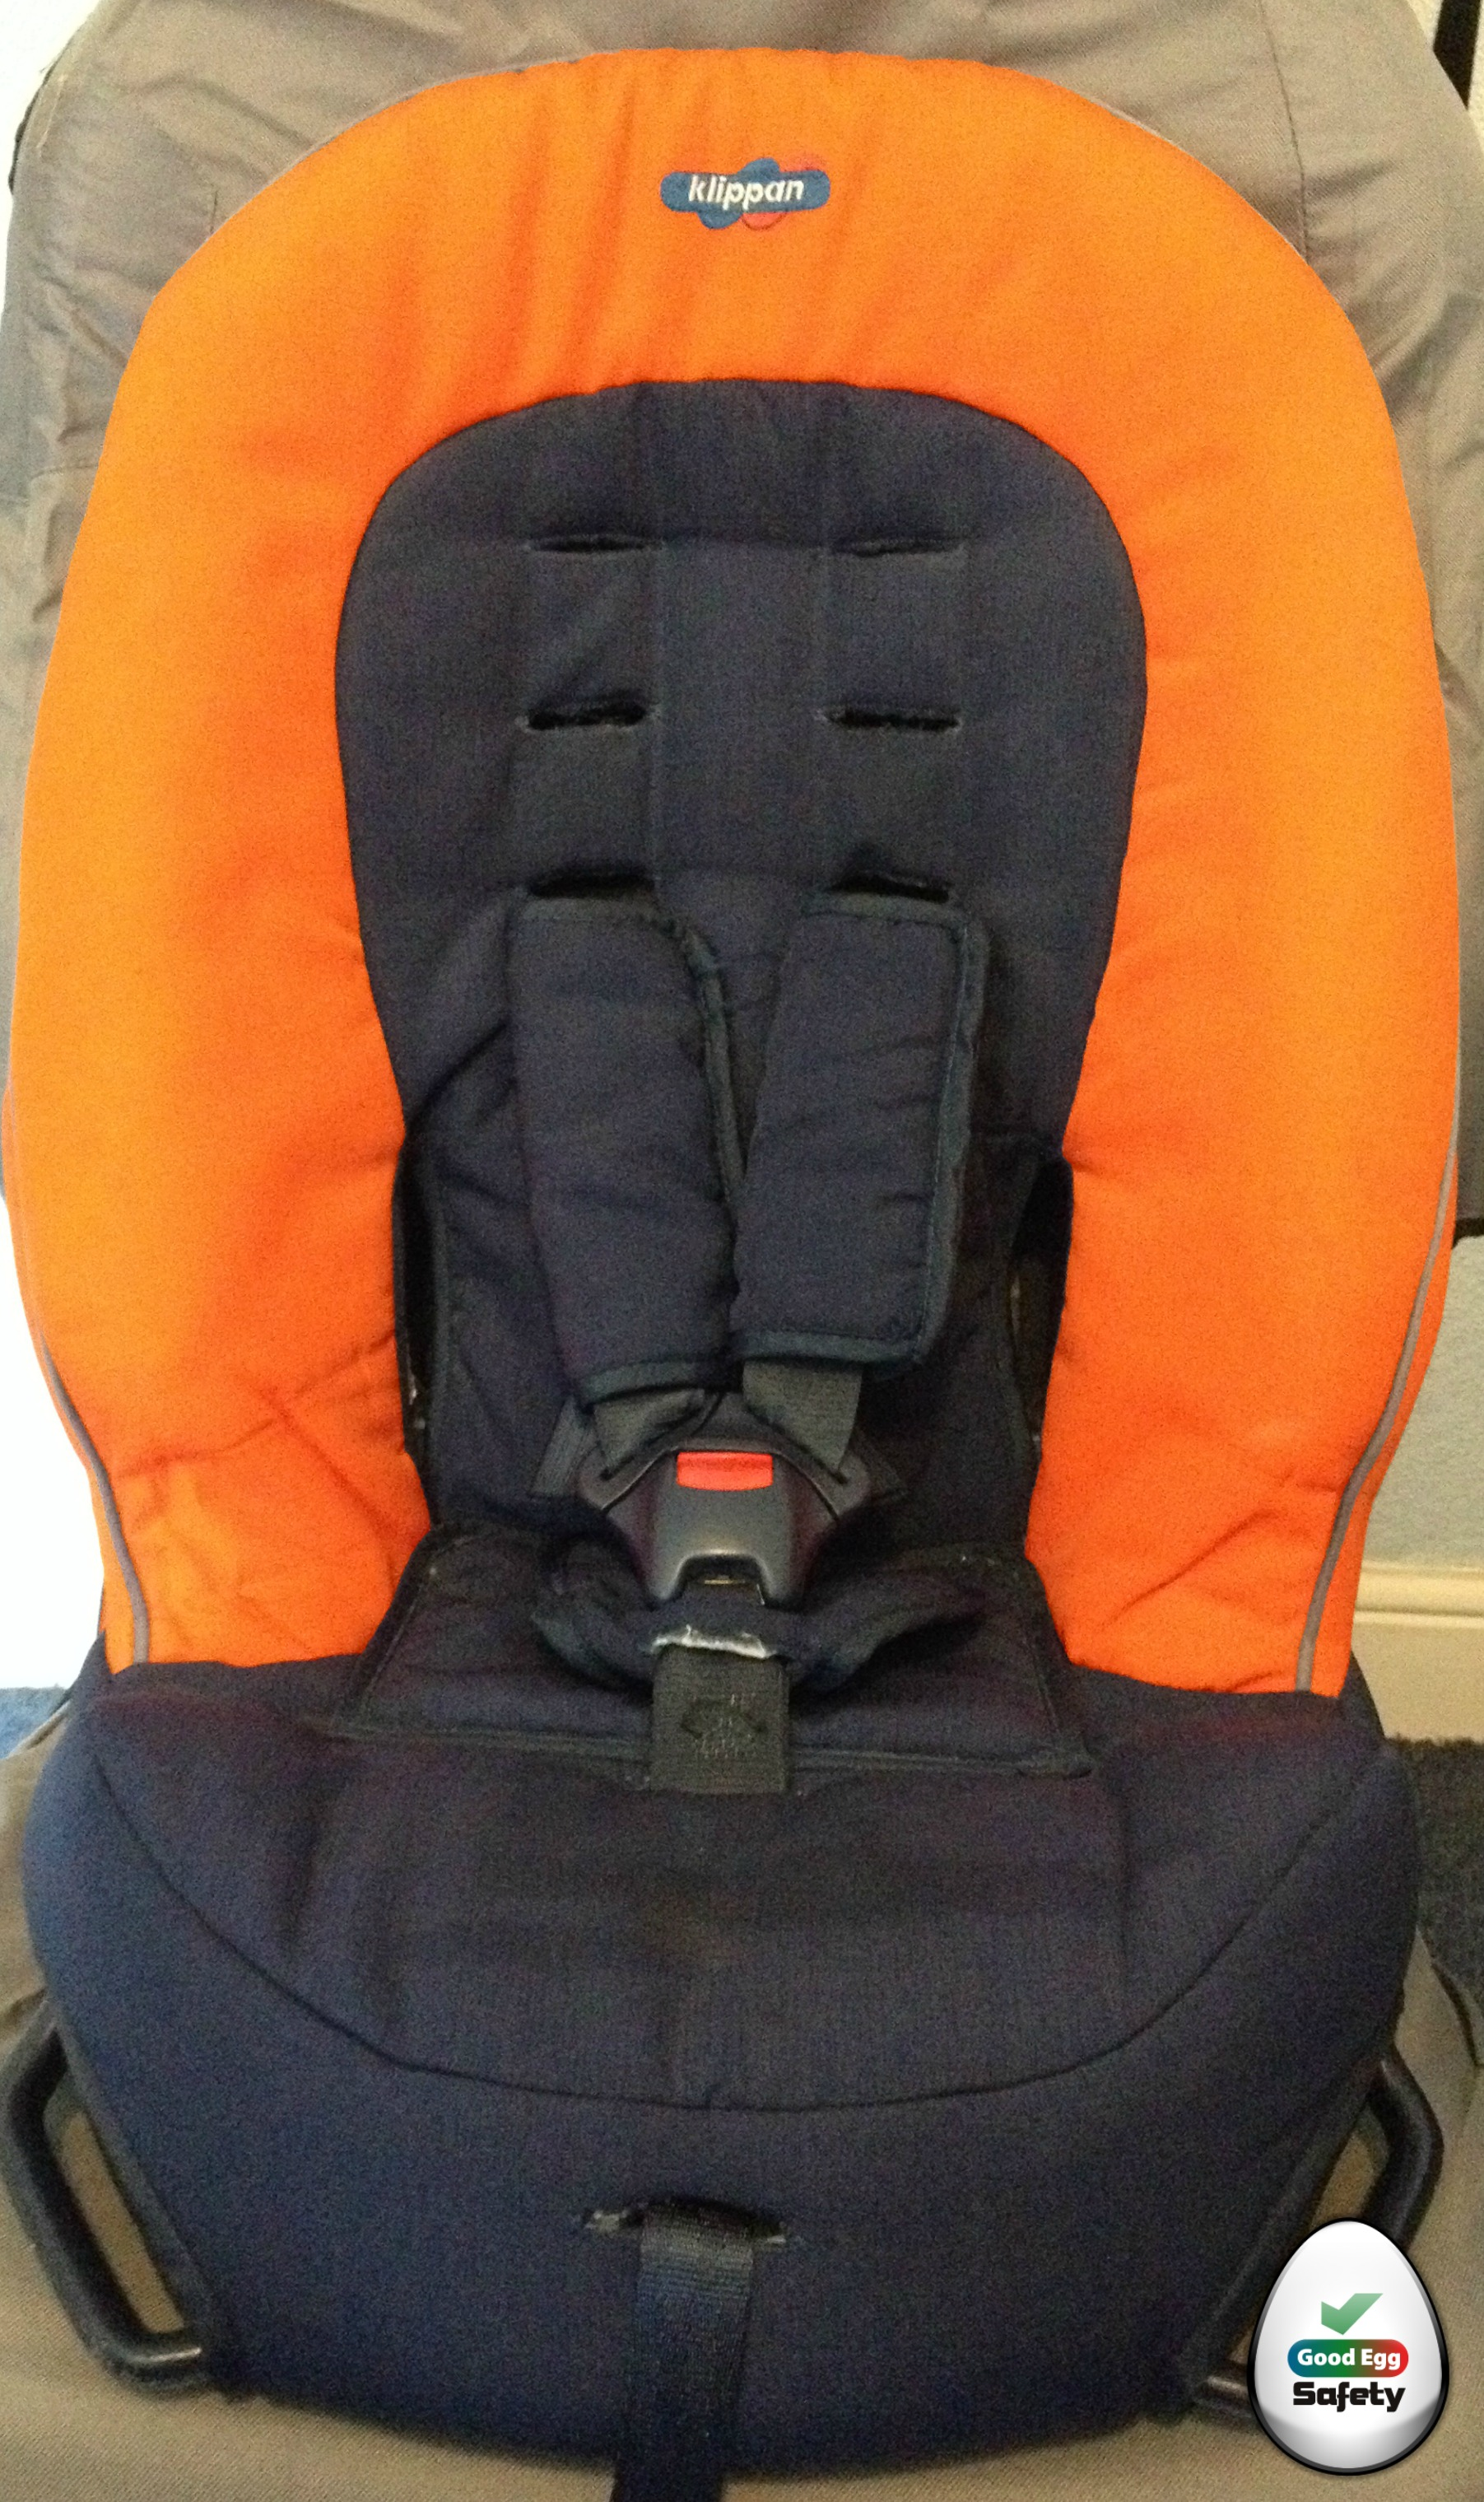 Second hand car seat danger - Case study 3